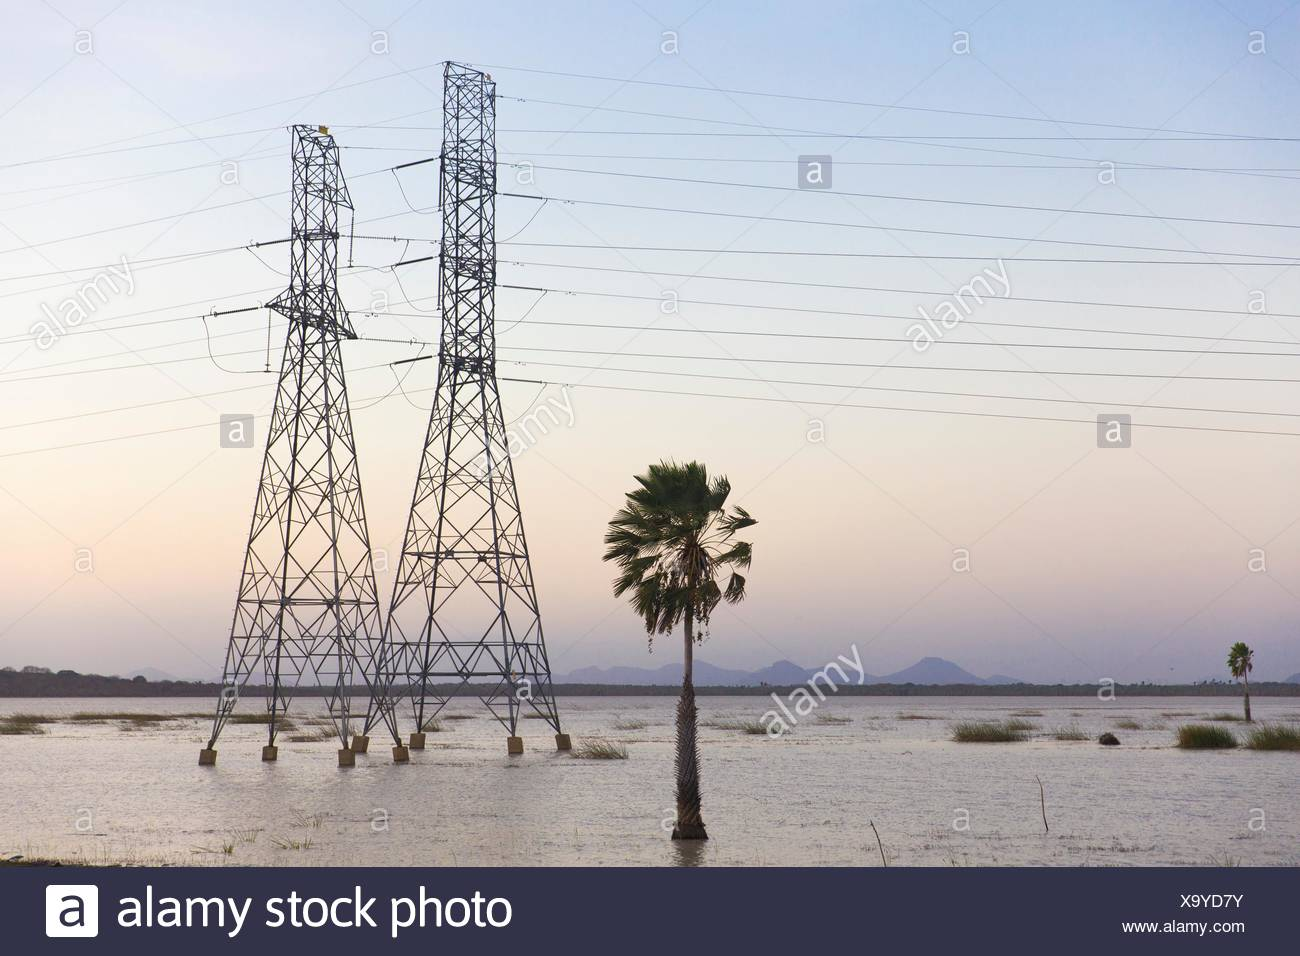 Electricity pylons in waterlogged field, Taiba, Ceara, Brazil Stock Photo